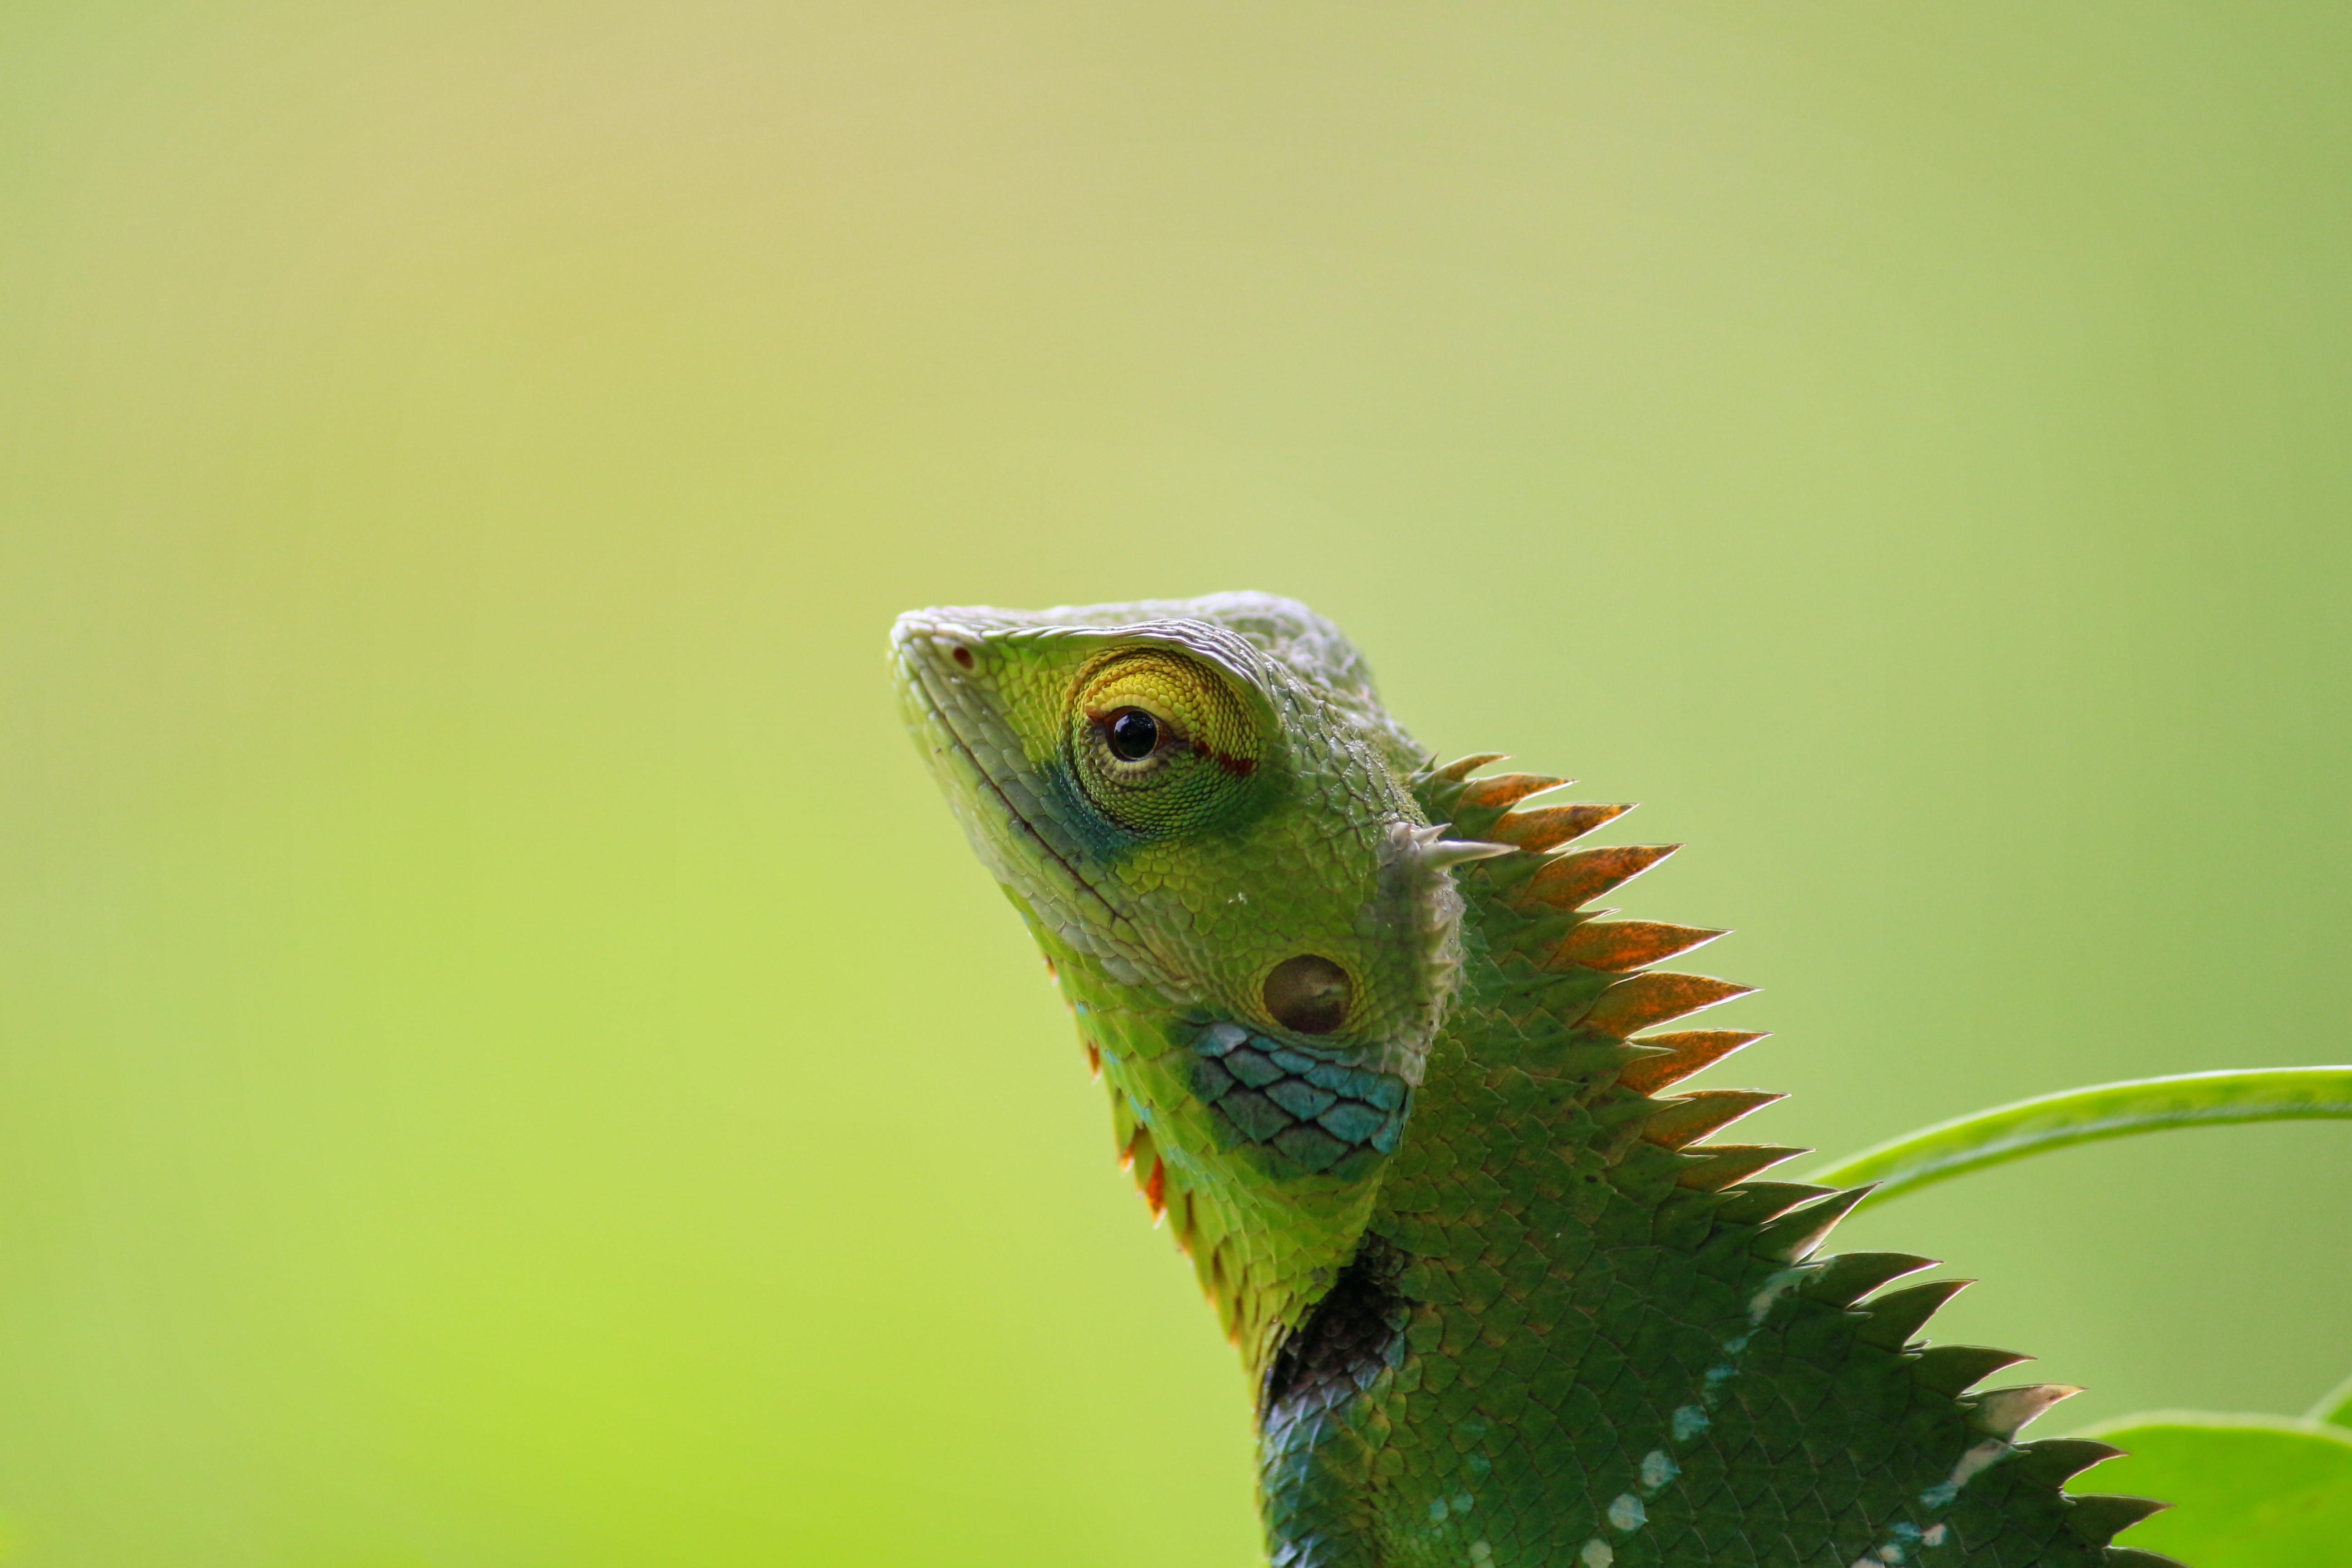 Free stock photo of animal, chameleon, colorful, cute